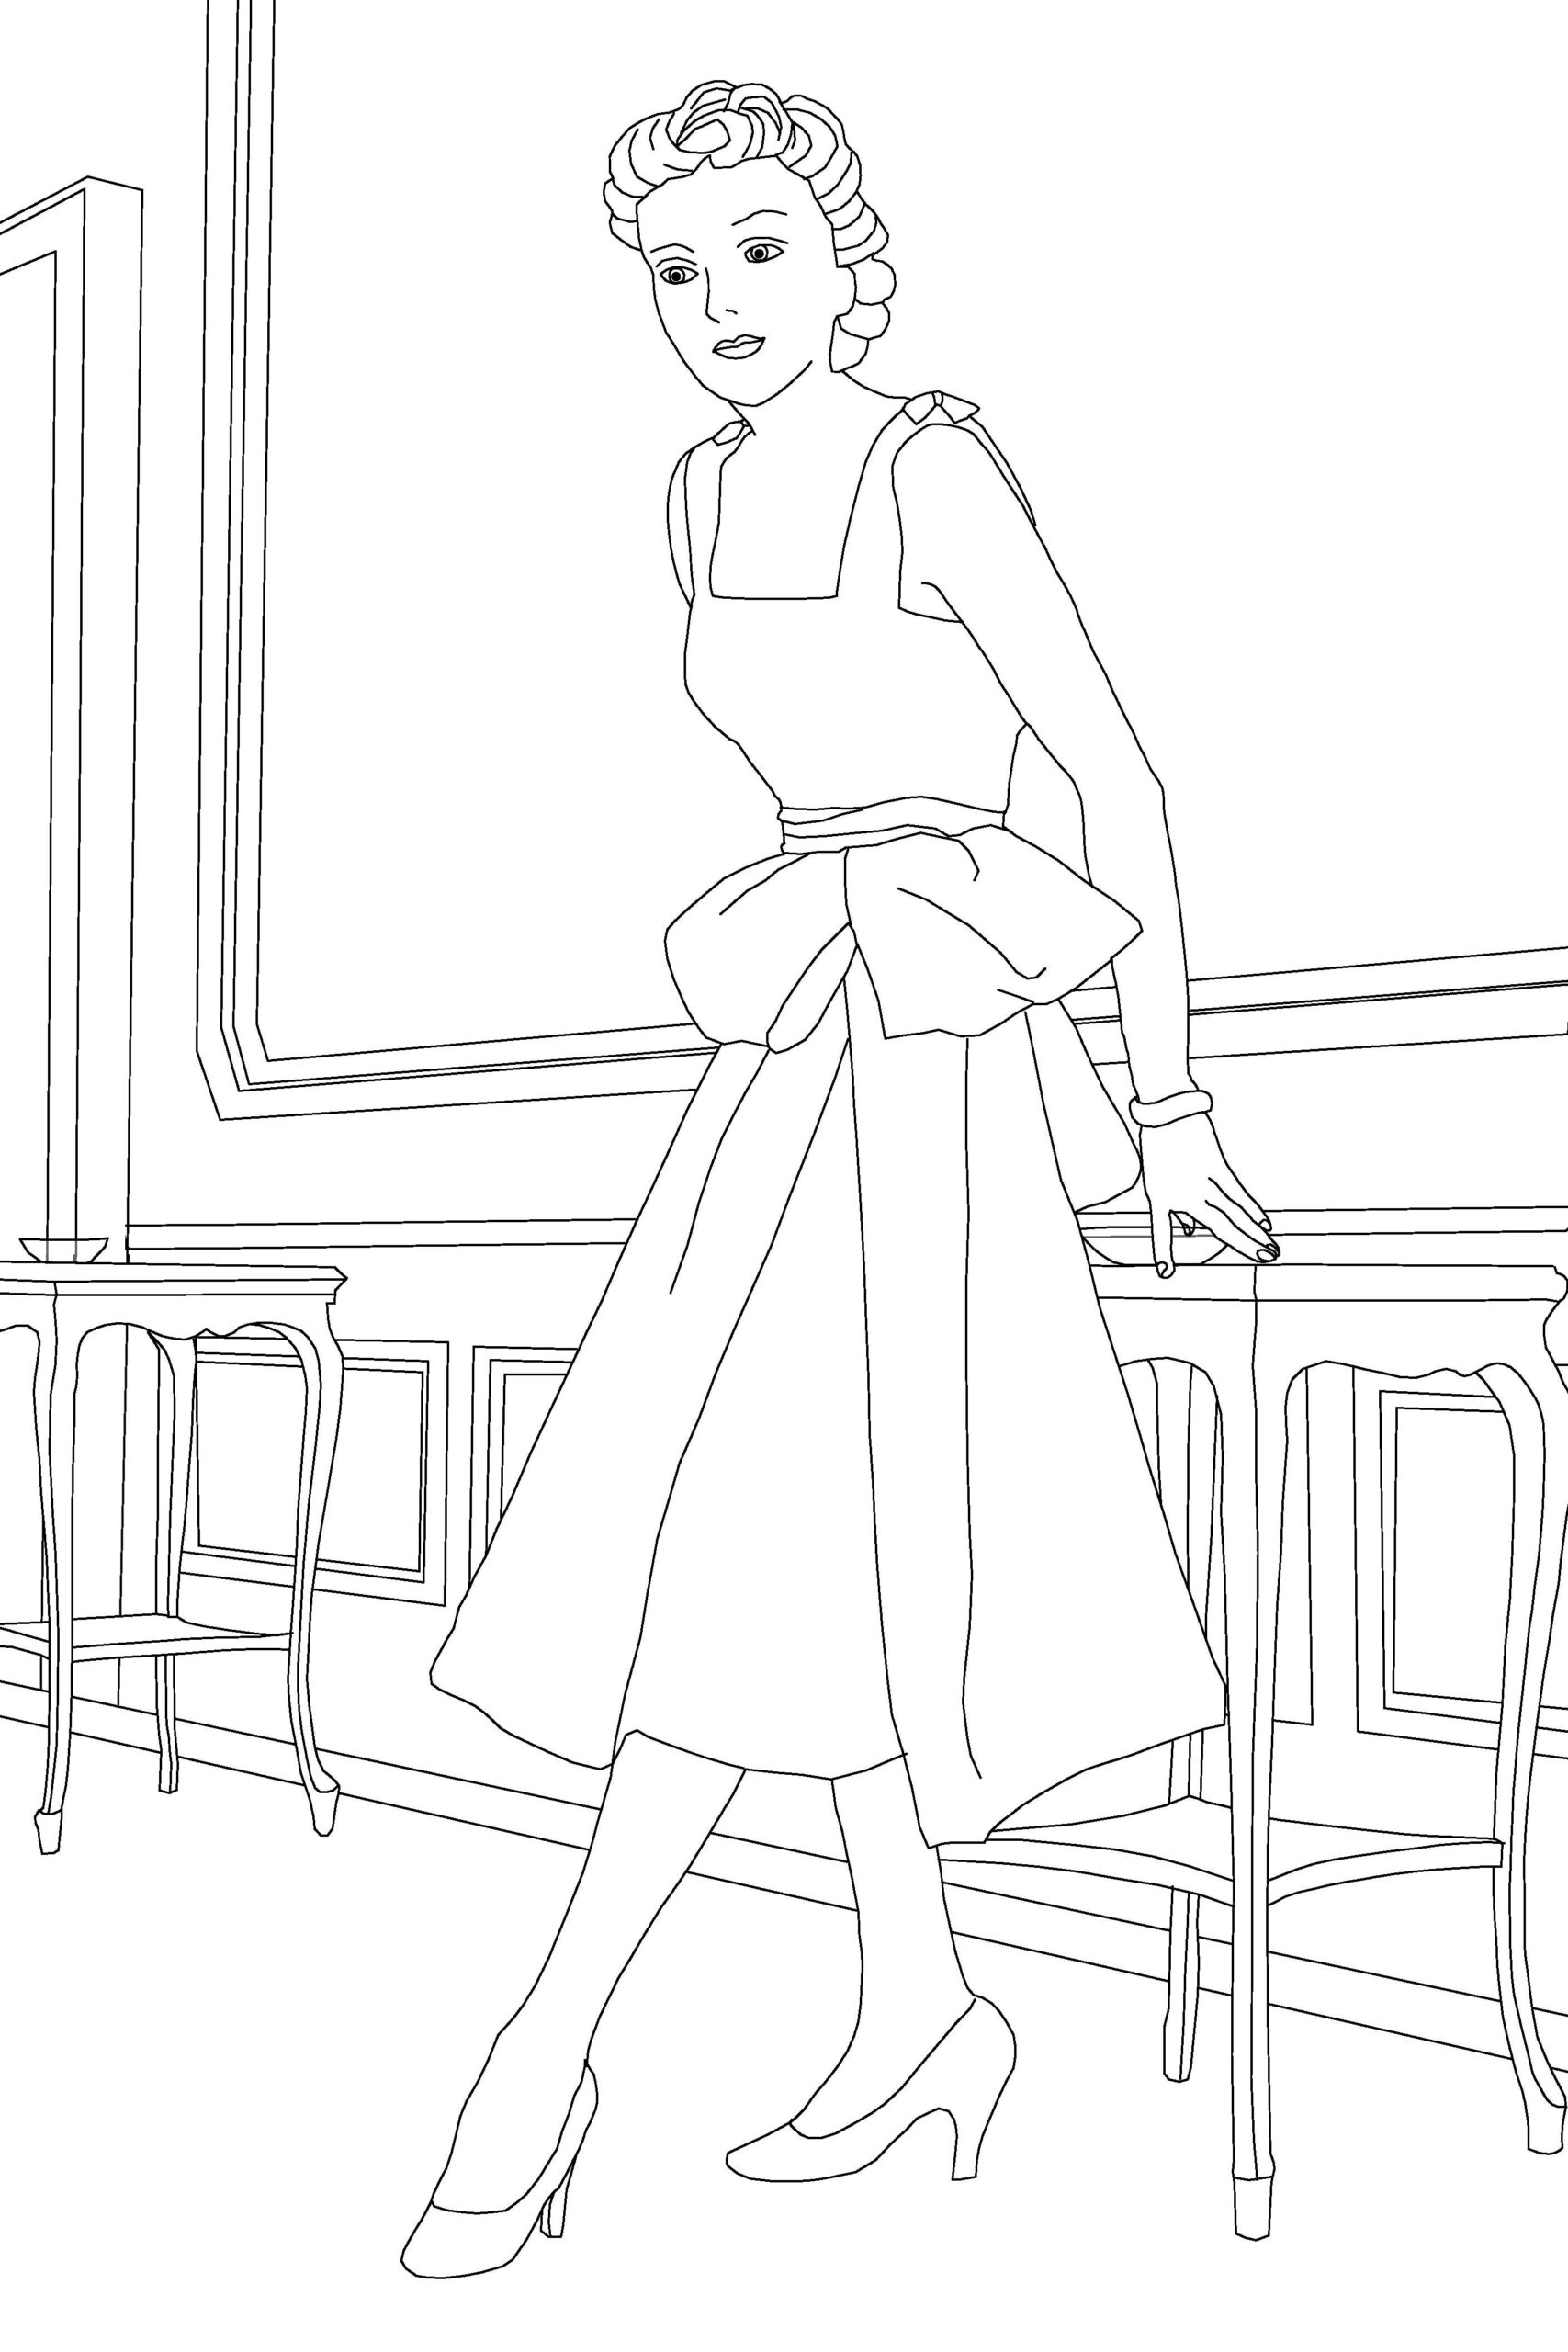 pin on fashion coloring rhymes with mine free classroom supplies crayola sprinkle art coloring pages Fashion Coloring Page